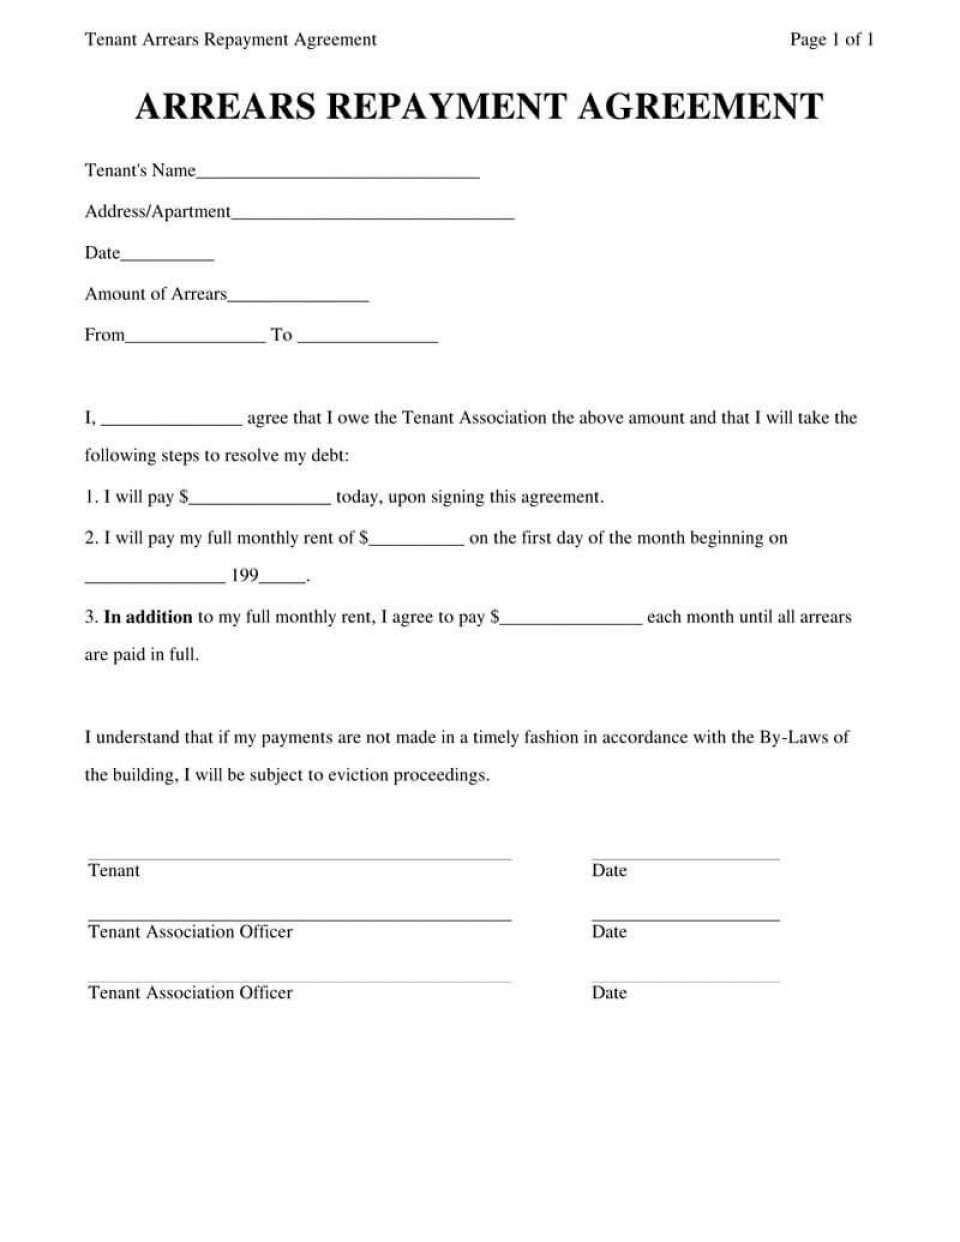 009 Fascinating Personal Loan Agreement Template Highest Clarity  Contract Free Word Format South Africa960